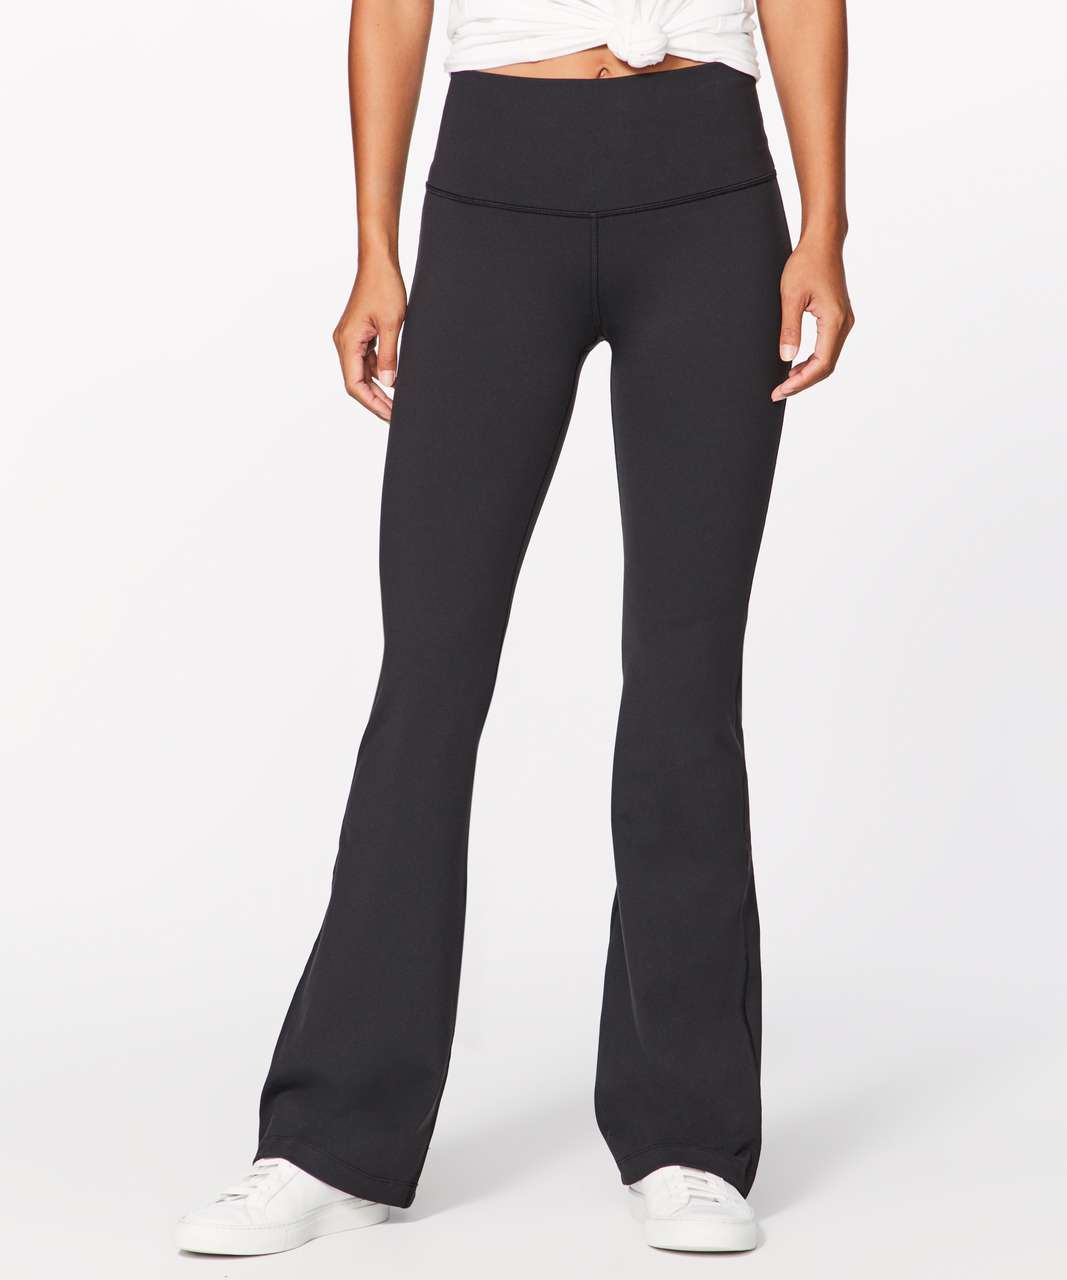 "Lululemon Throw Back Pant *32.5"" - Black"